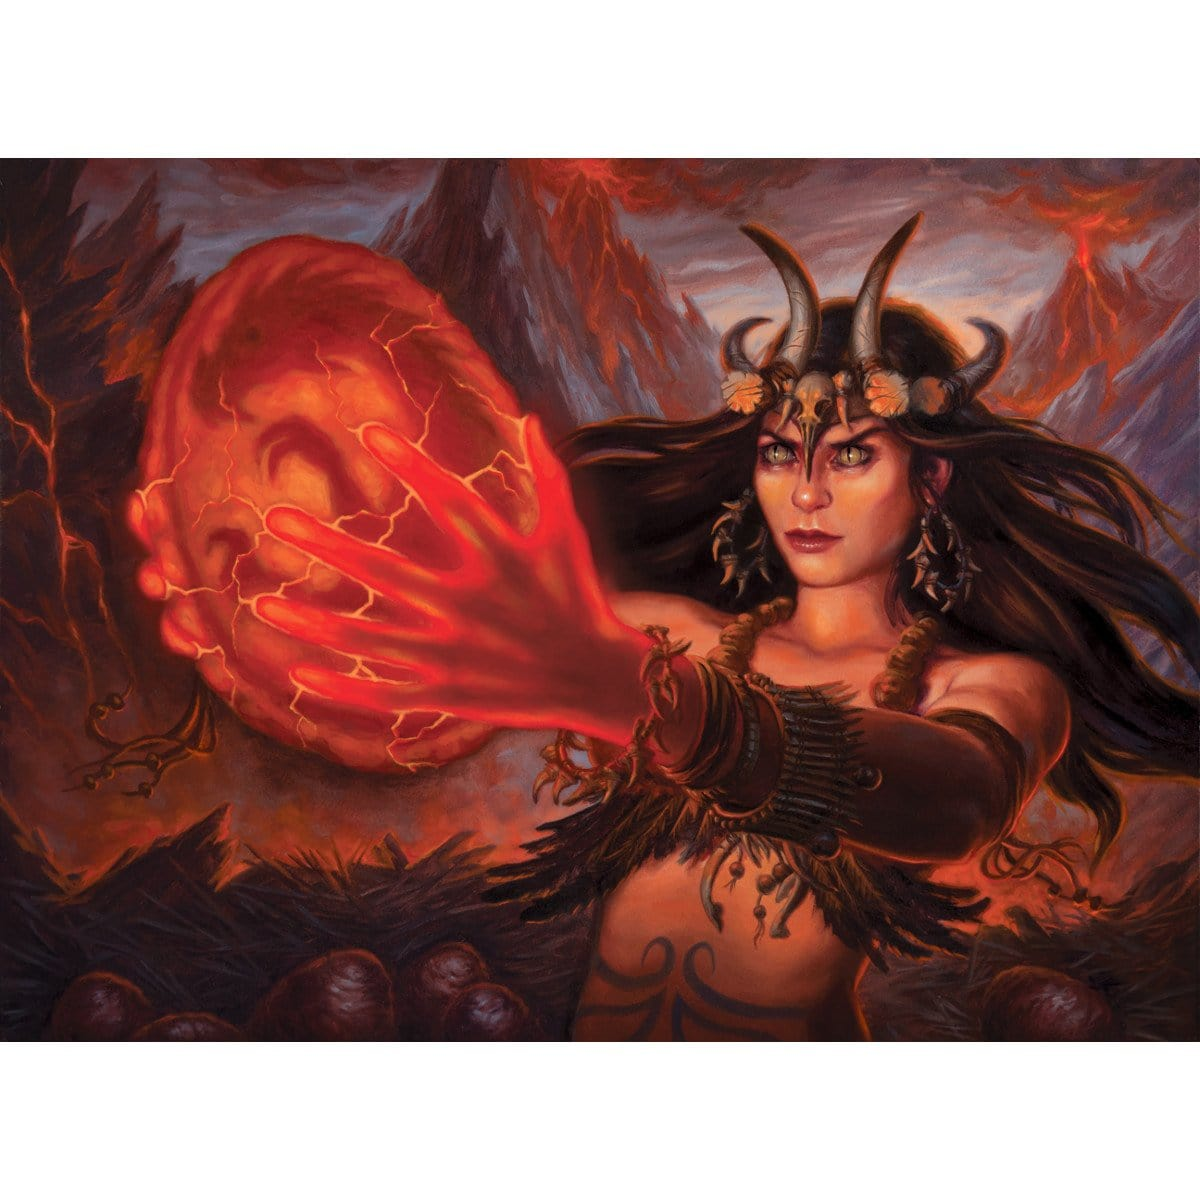 Brood Keeper Print - Print - Original Magic Art - Accessories for Magic the Gathering and other card games